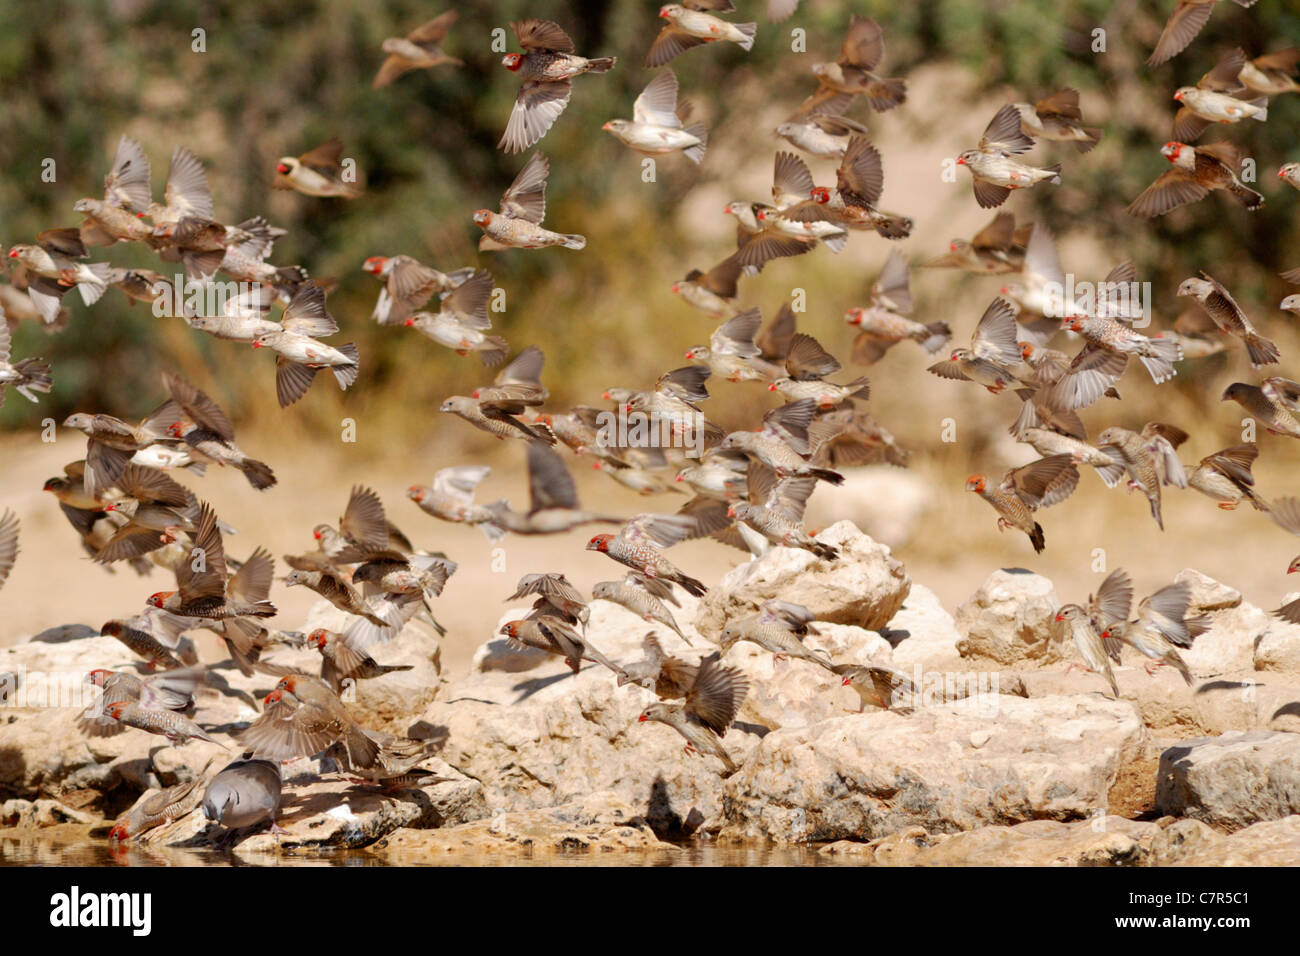 Flock of Red-headed finches (Amadina erythrocephala), Kgalagadi Transfrontier Park, South Africa - Stock Image